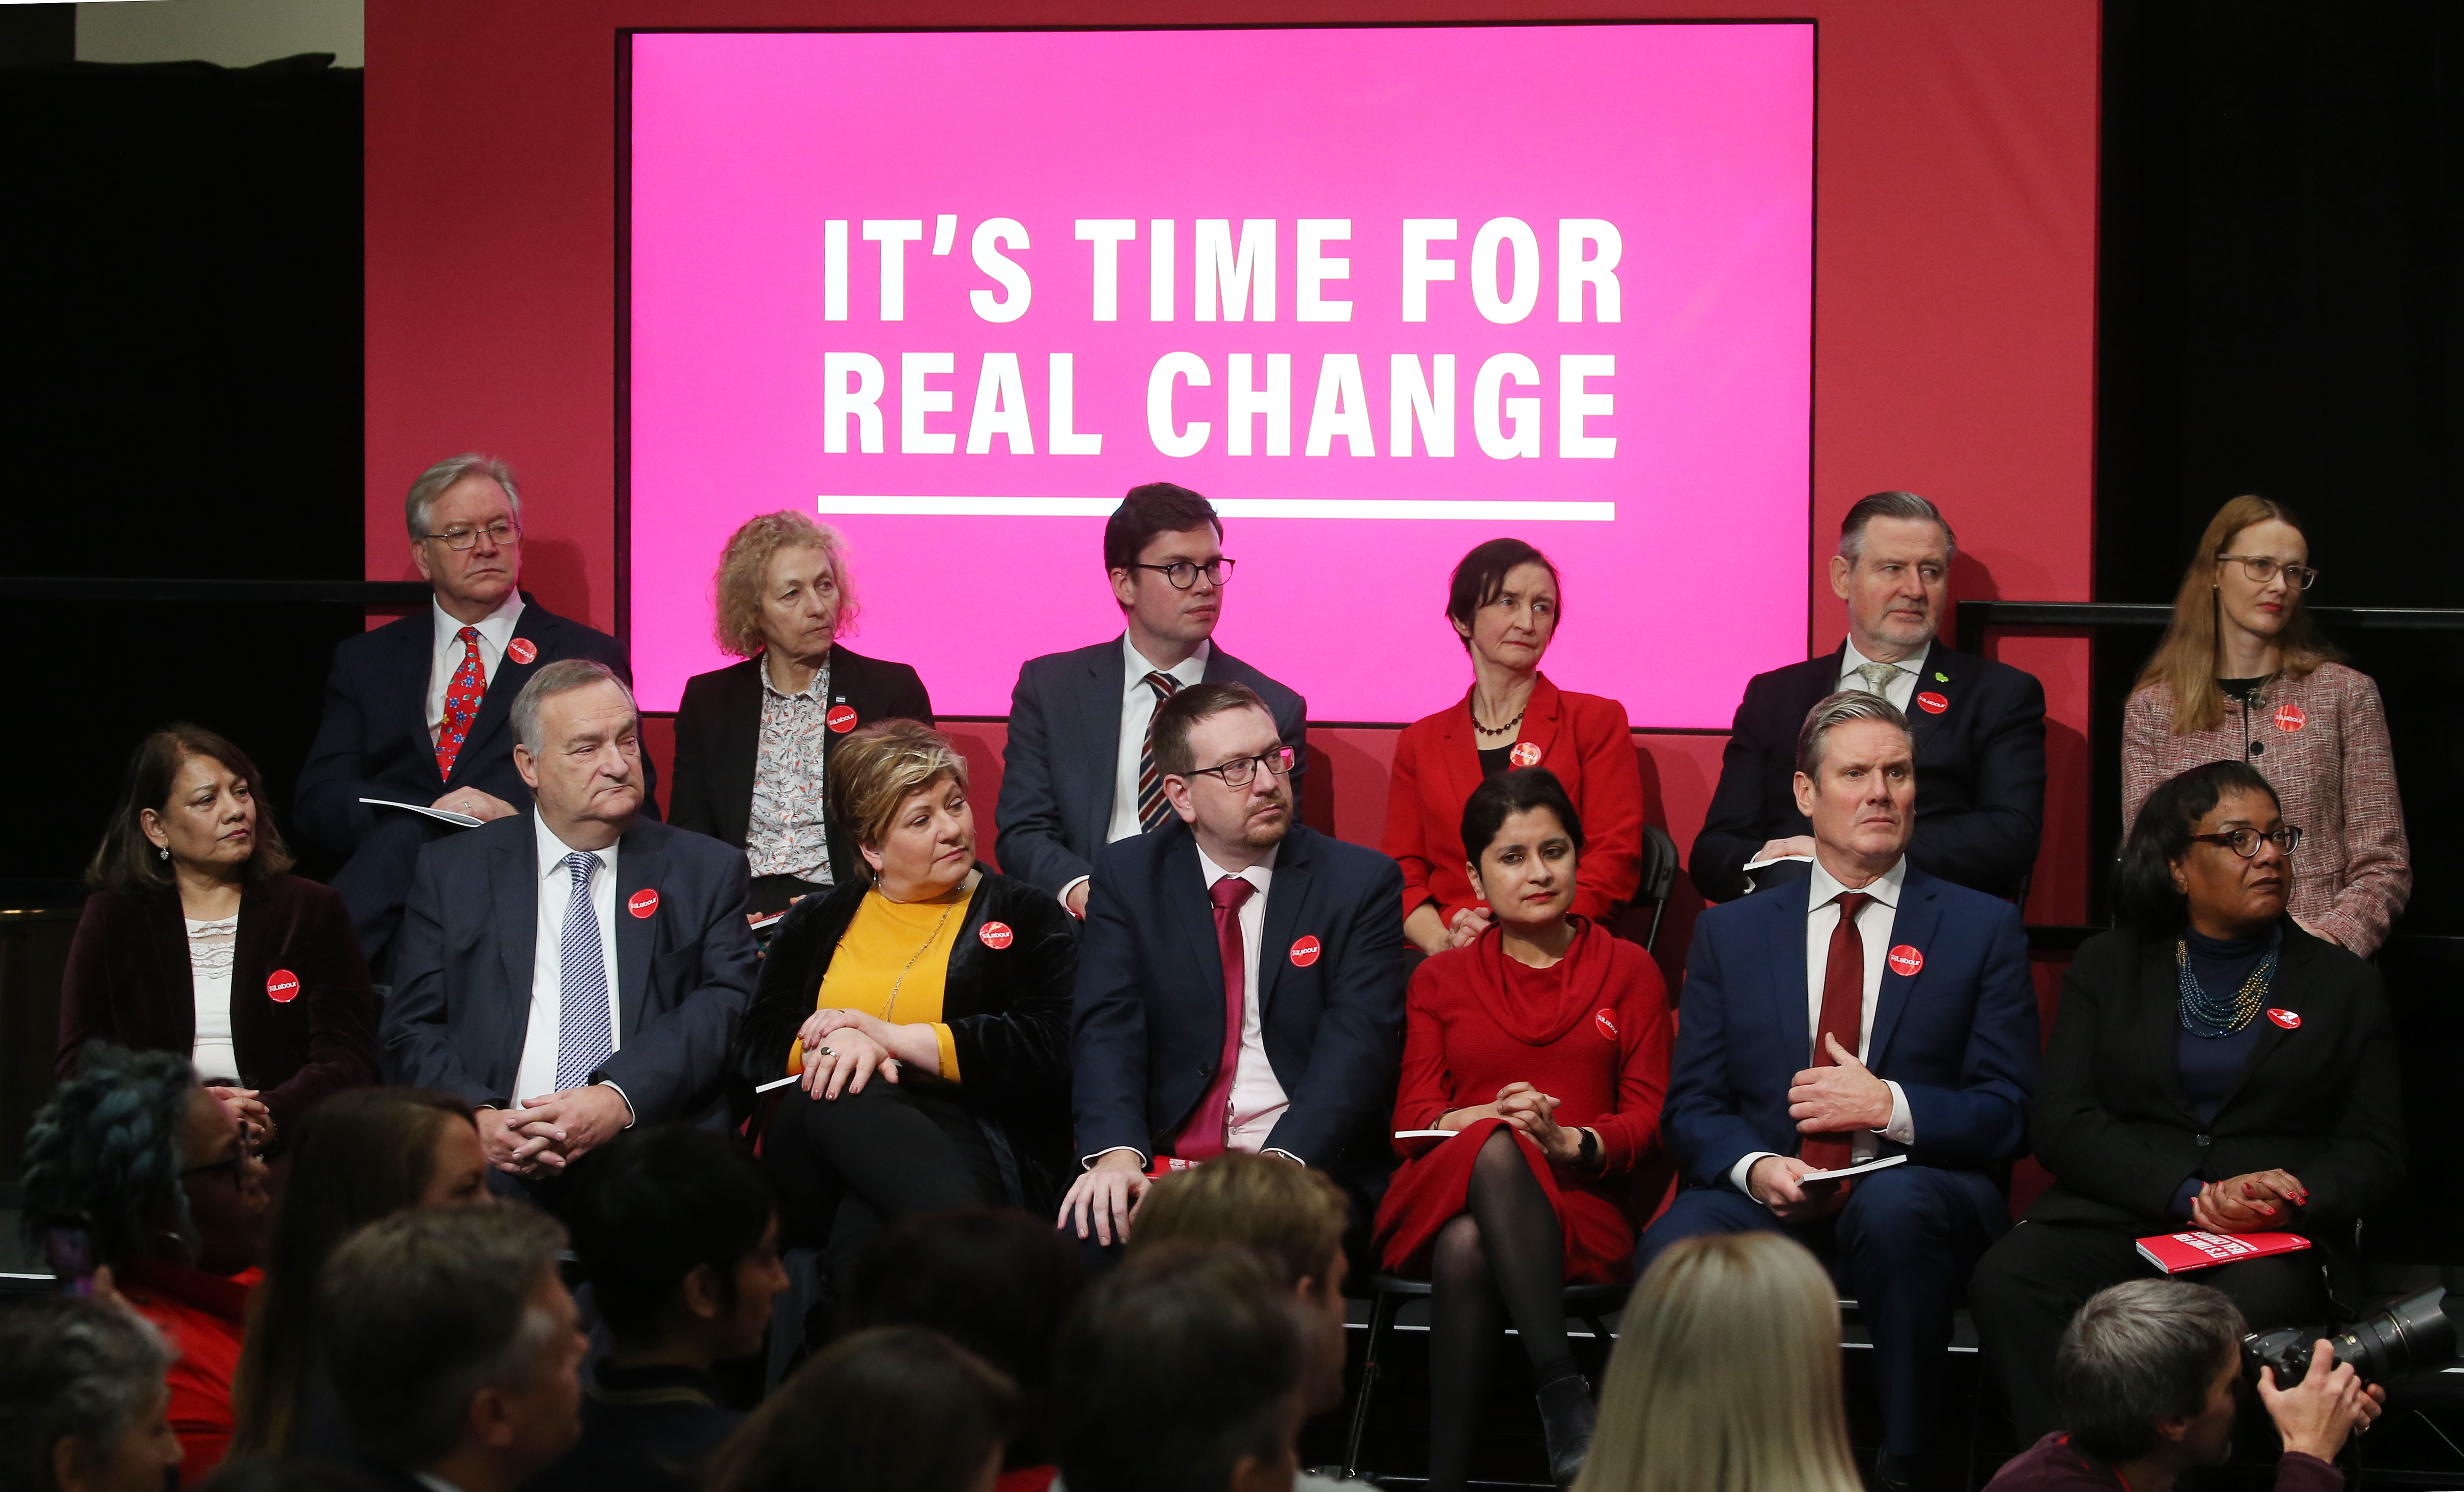 The shadow cabinet listen to Jeremy Corbyn during the launch of the Labour Party manifesto in Birmingham for the General Election. Picture dated: Thursday November 21, 2019.